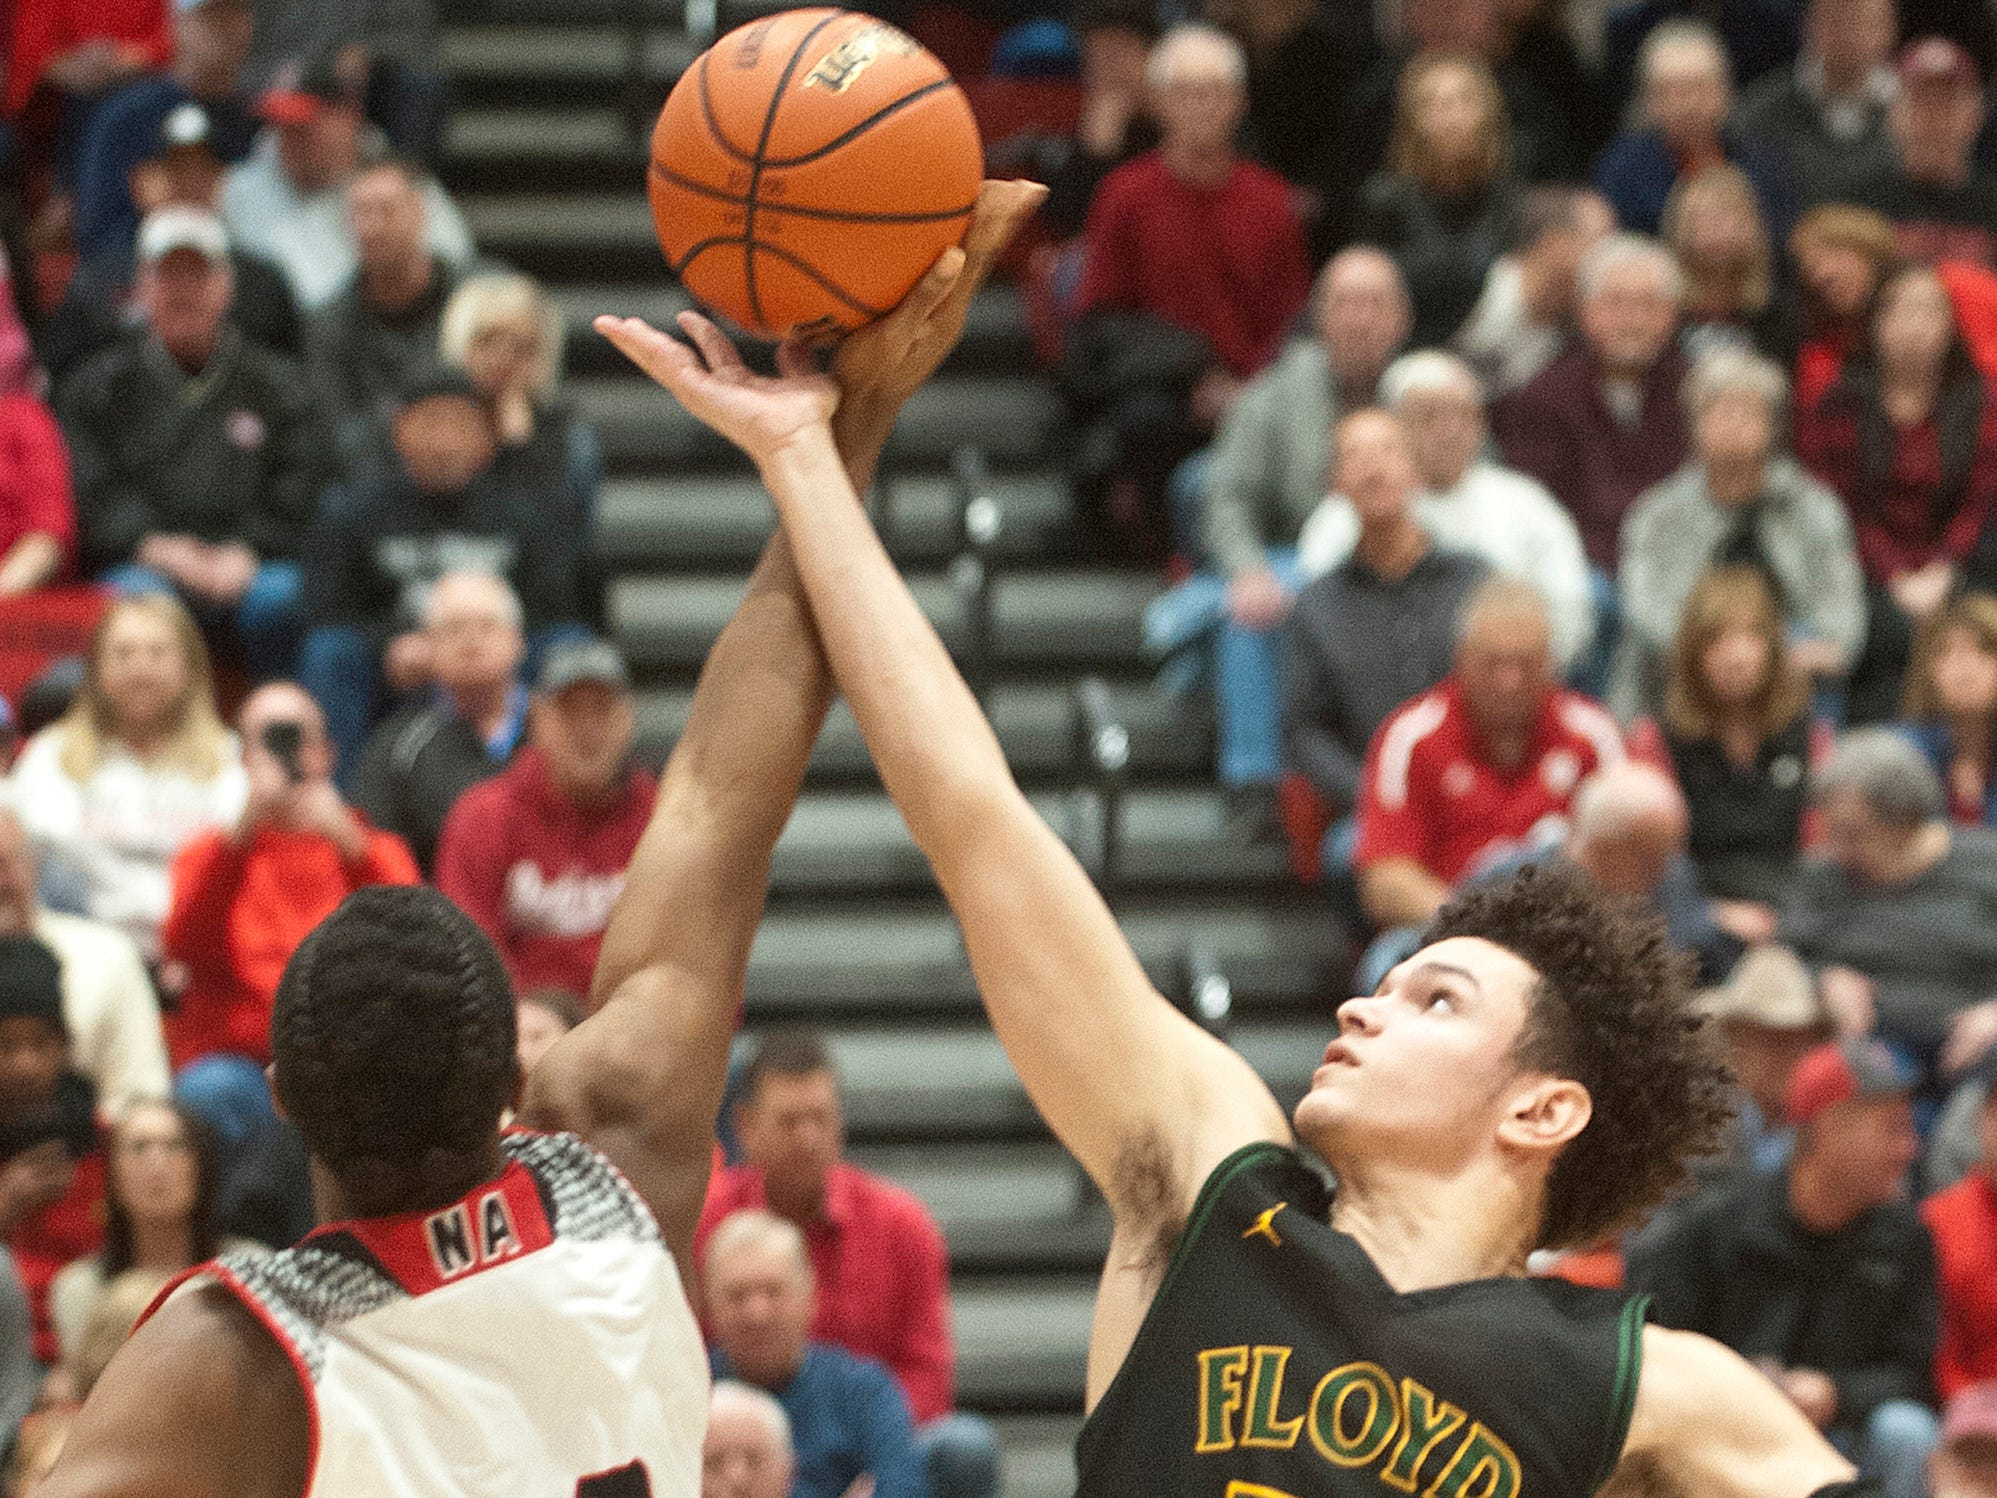 New Albany guard Julien Hunter and Floyd Central forward Cobie Barnes tip off the game.07 December 2018